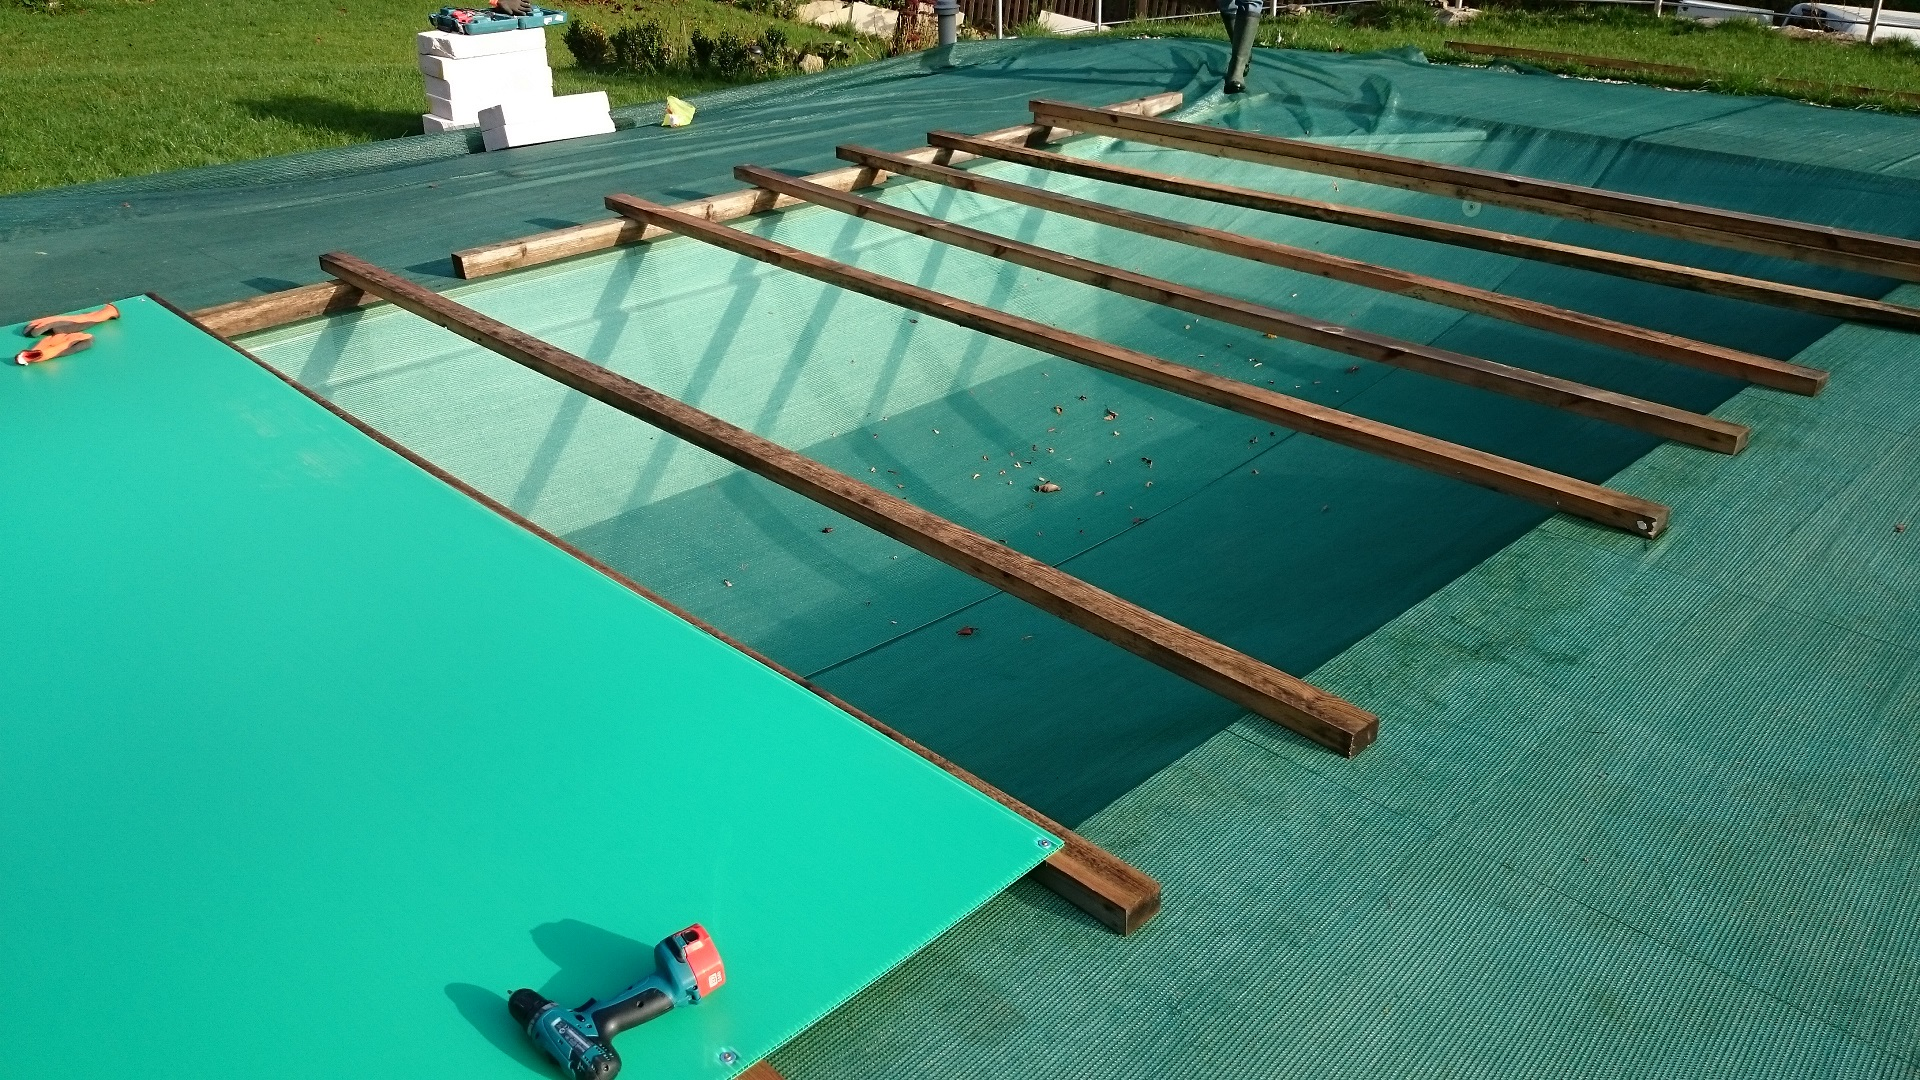 Poolabdeckung Platten Klebefolie Rele Austria International